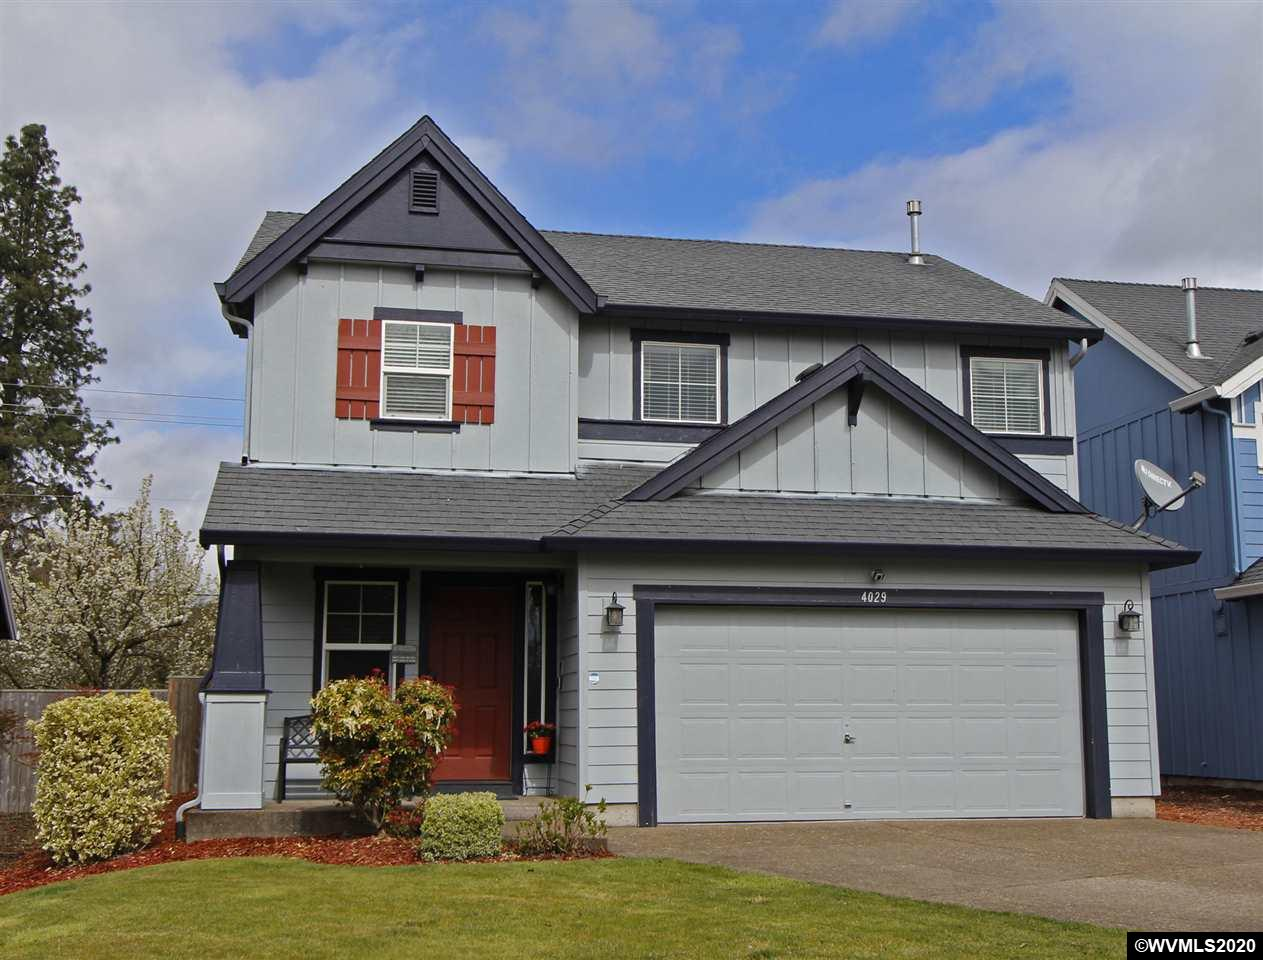 Beautifully updated this wonderful home features newer vinyl plank flooring in the main living area, a gas fireplace & neutral paint colors.  The counters are upgraded with tile while the outdoor space is lovely featuring a large patio plus a nice deck with a full cover so you can enjoy the outdoors year round, rain or shine. The stairs access the living room for nice flow & the upper story features bedrooms and the utility area. Master suite features a nice walk in closet & a full bath. Plenty of parking.